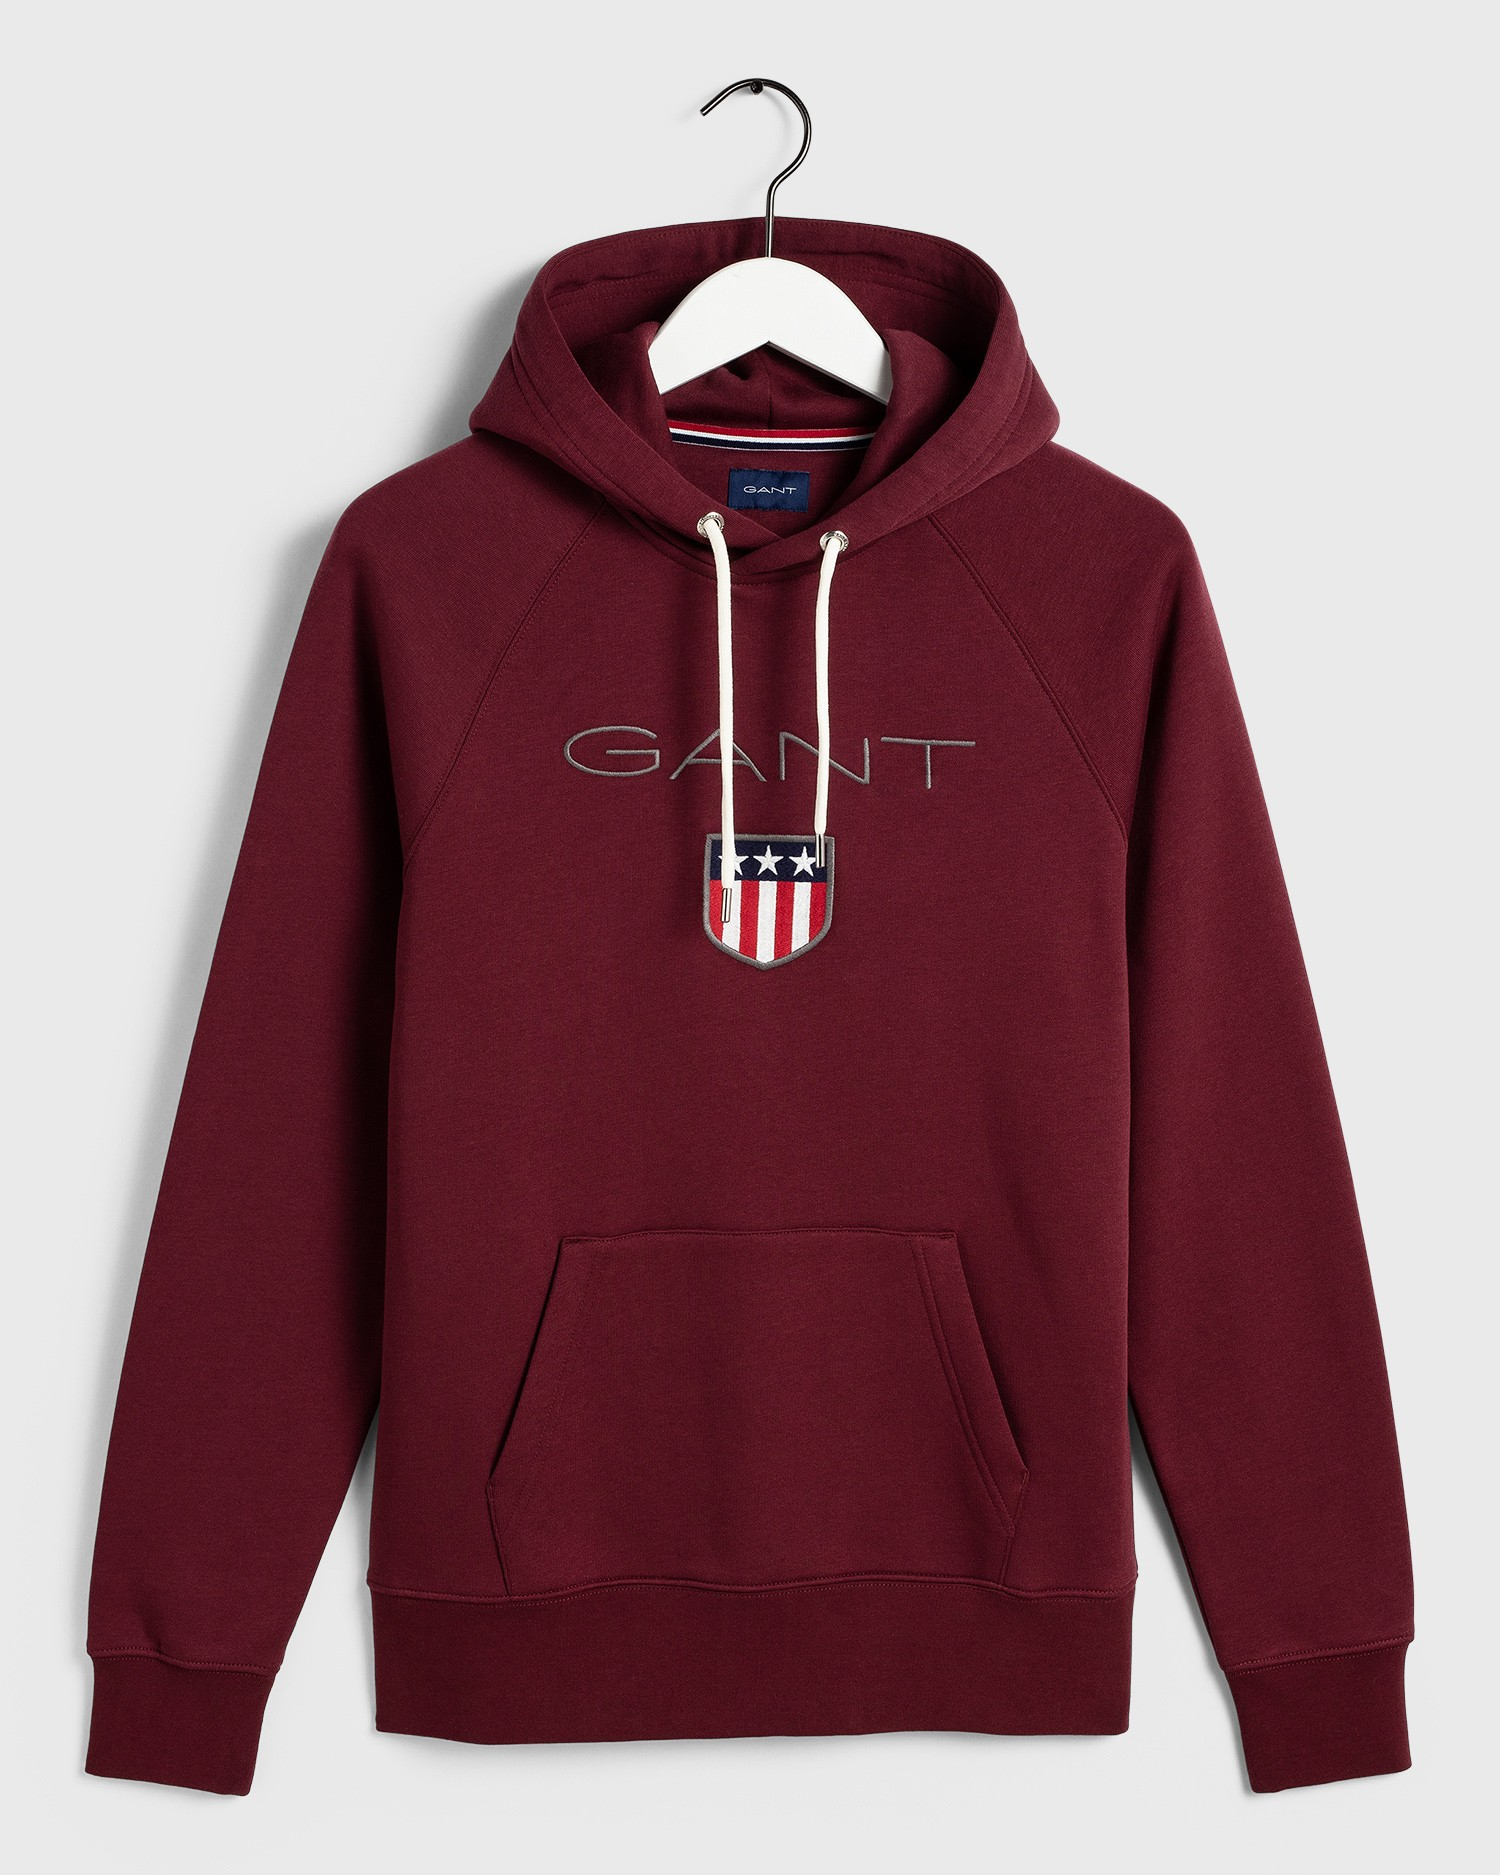 GANT Men's Shield Sweat Hoodie - 276310